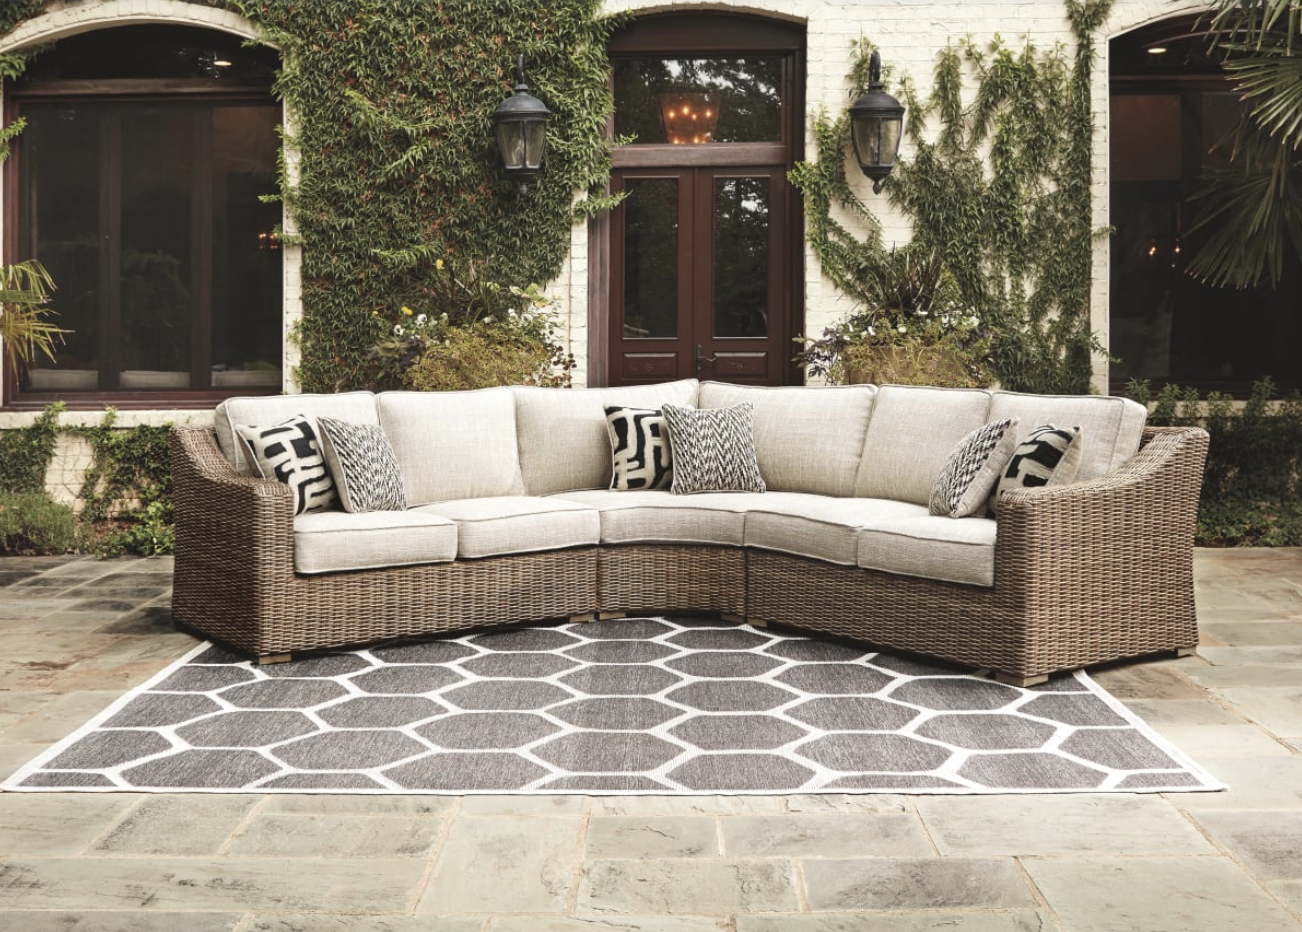 Beachcroft - beige - Sectional Lounger from Ashley